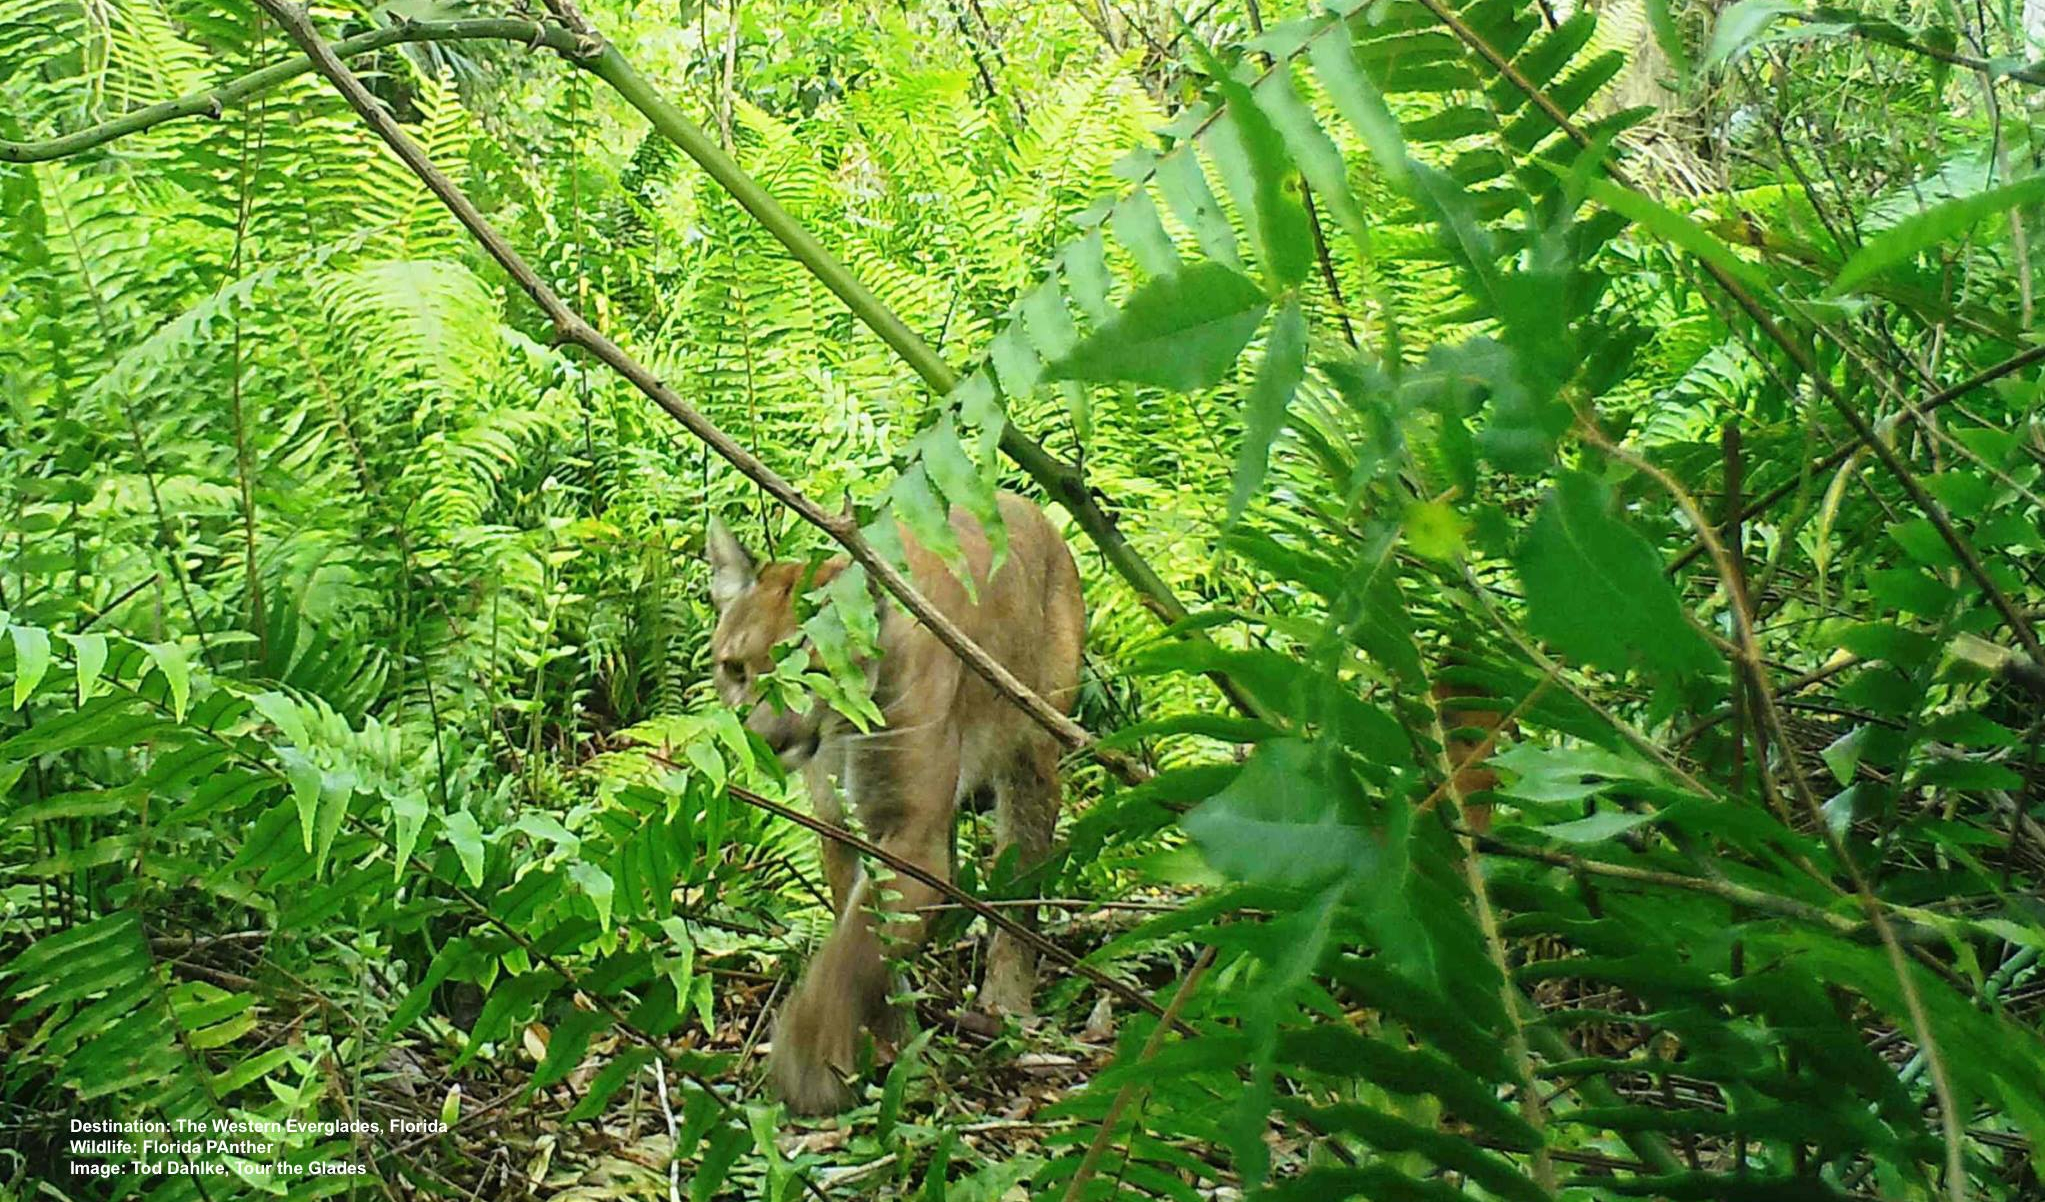 A FLORIDA PANTHER MOVES SILENTLY THROUGH THE UNDERBRUSH. THEY HUNT DEER AND WILD HOG, THEIR MAIN FOOD, MOSTLY AT NIGHT. IMAGE: TOD DAHLKE OF TOUR THE GLADES.